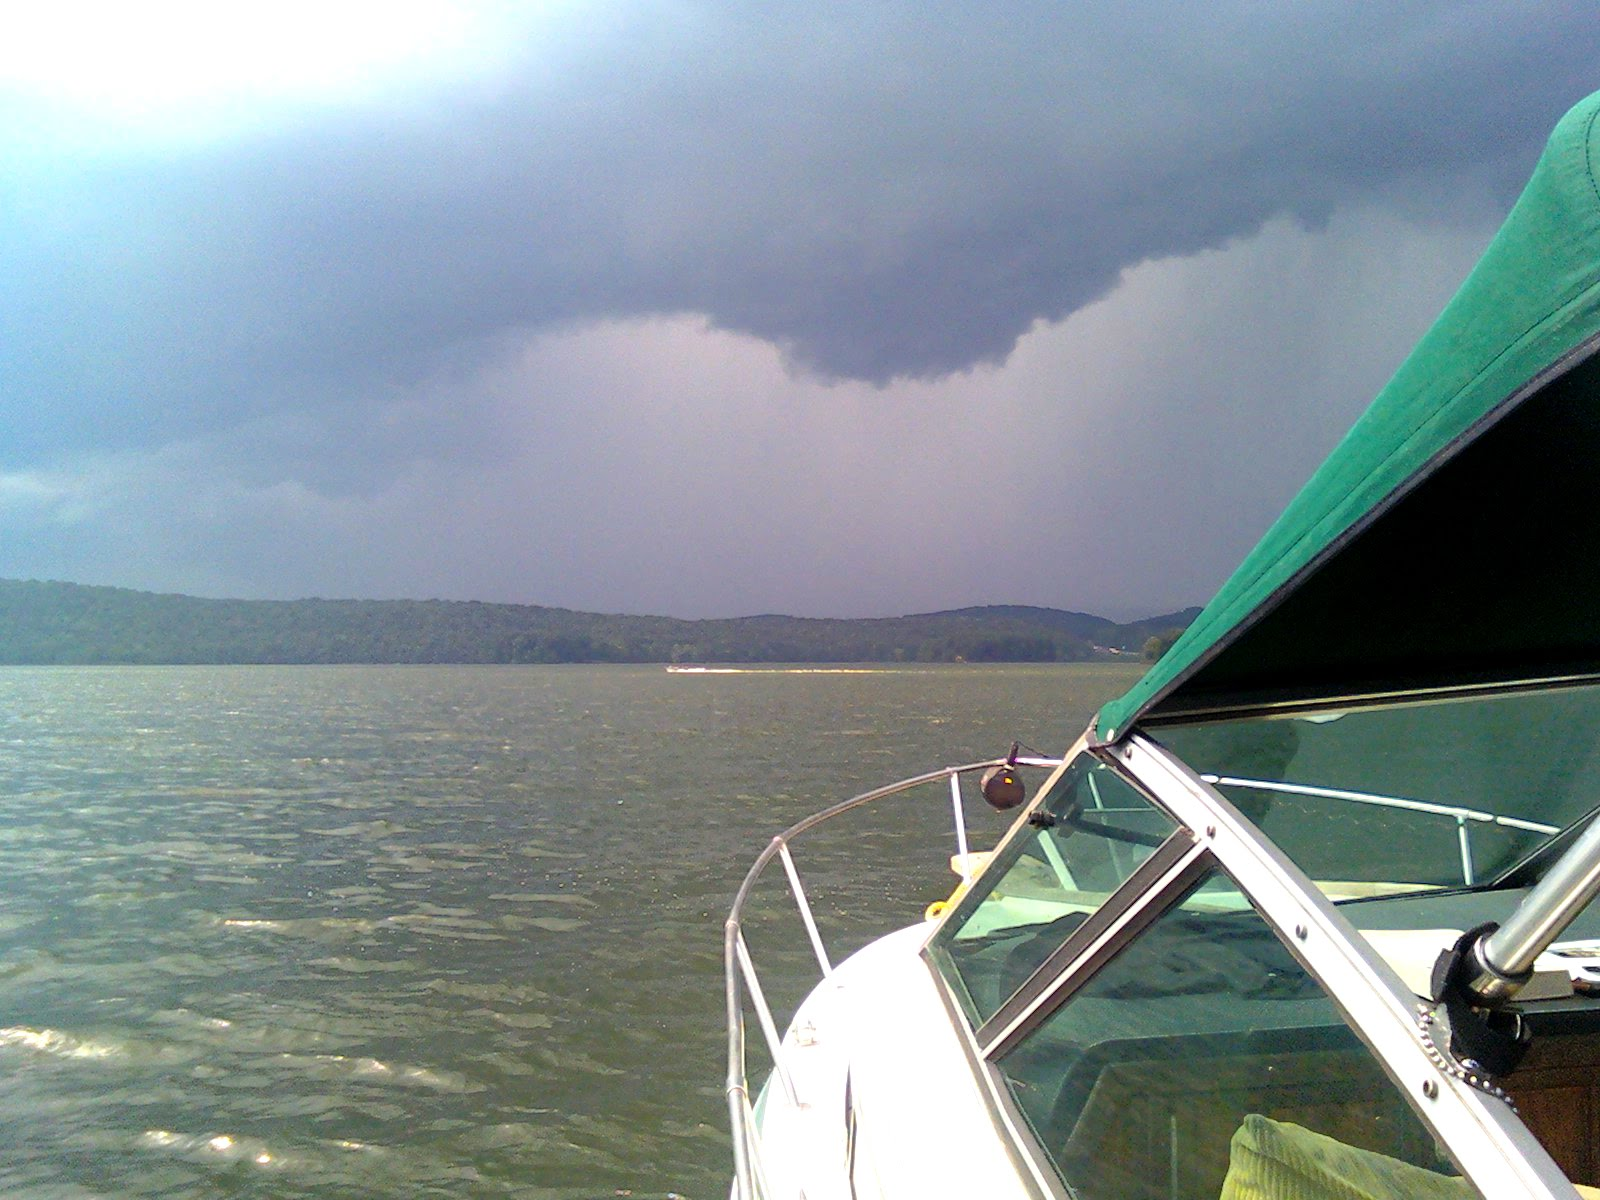 Rough weather can pop up quickly. Using your own understanding of clouds along with local forecasts from the pros will keep you safer on the water.